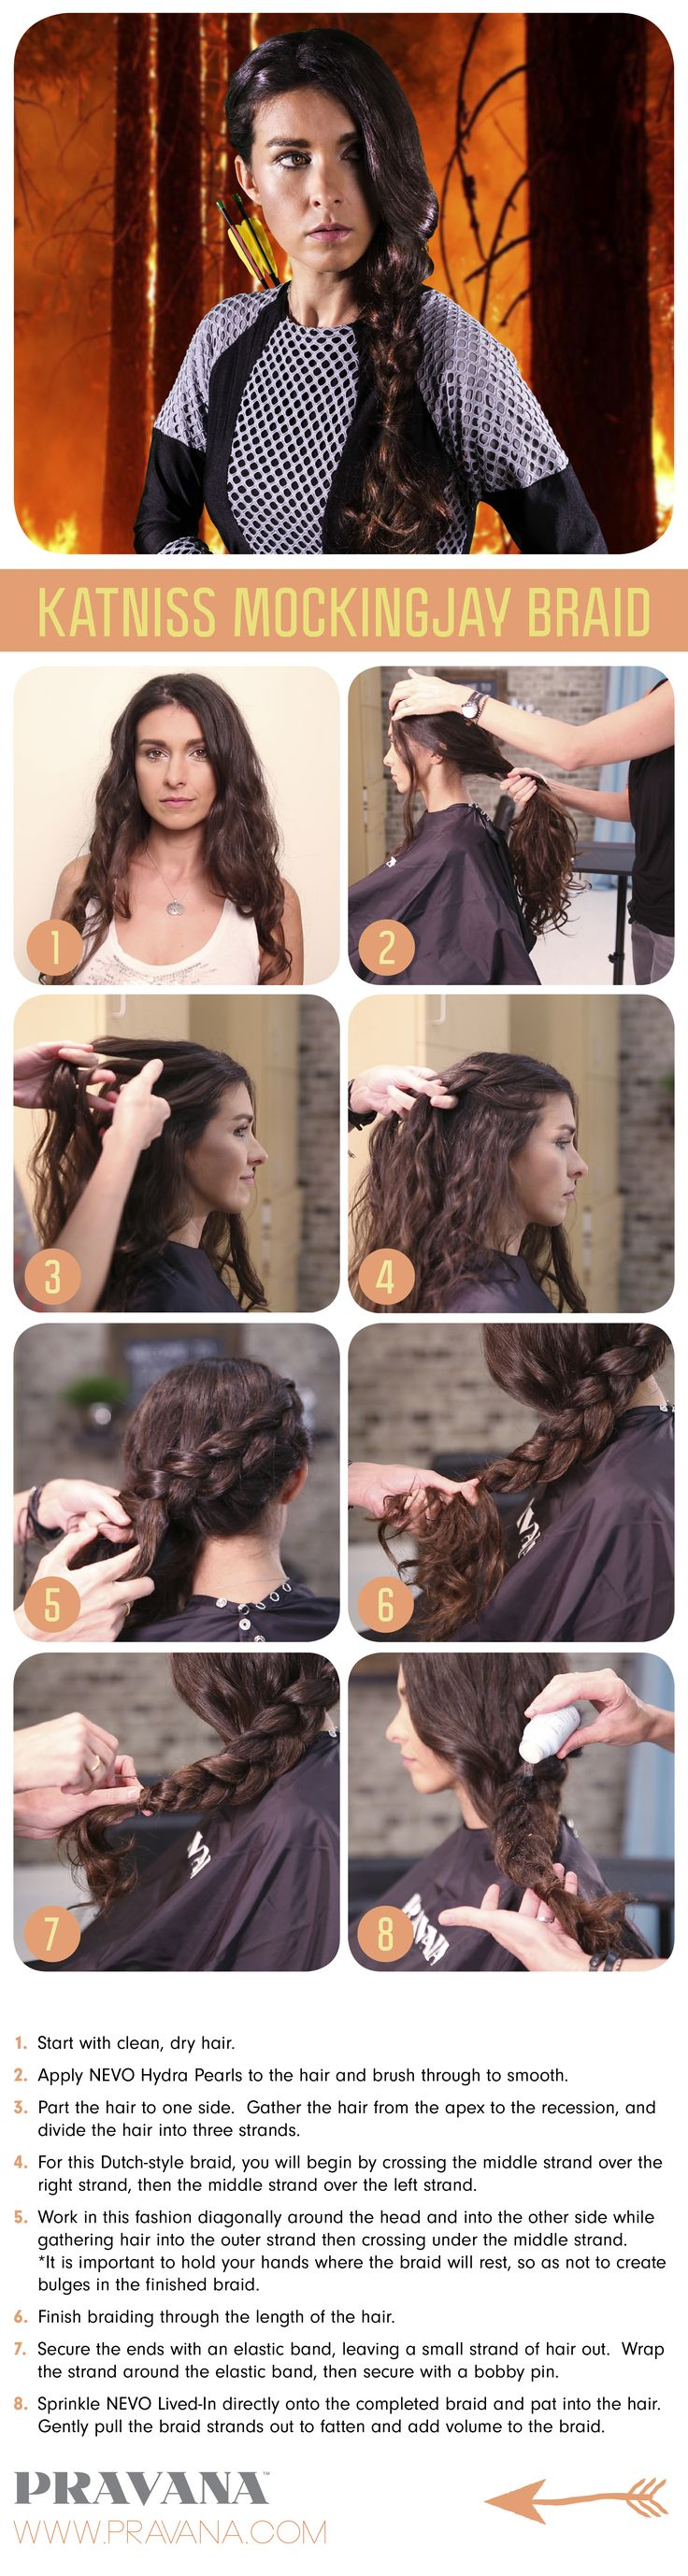 Katniss Everdeen Braid How-To #Halloween #HungerGames http://aol.it/1yHrayA